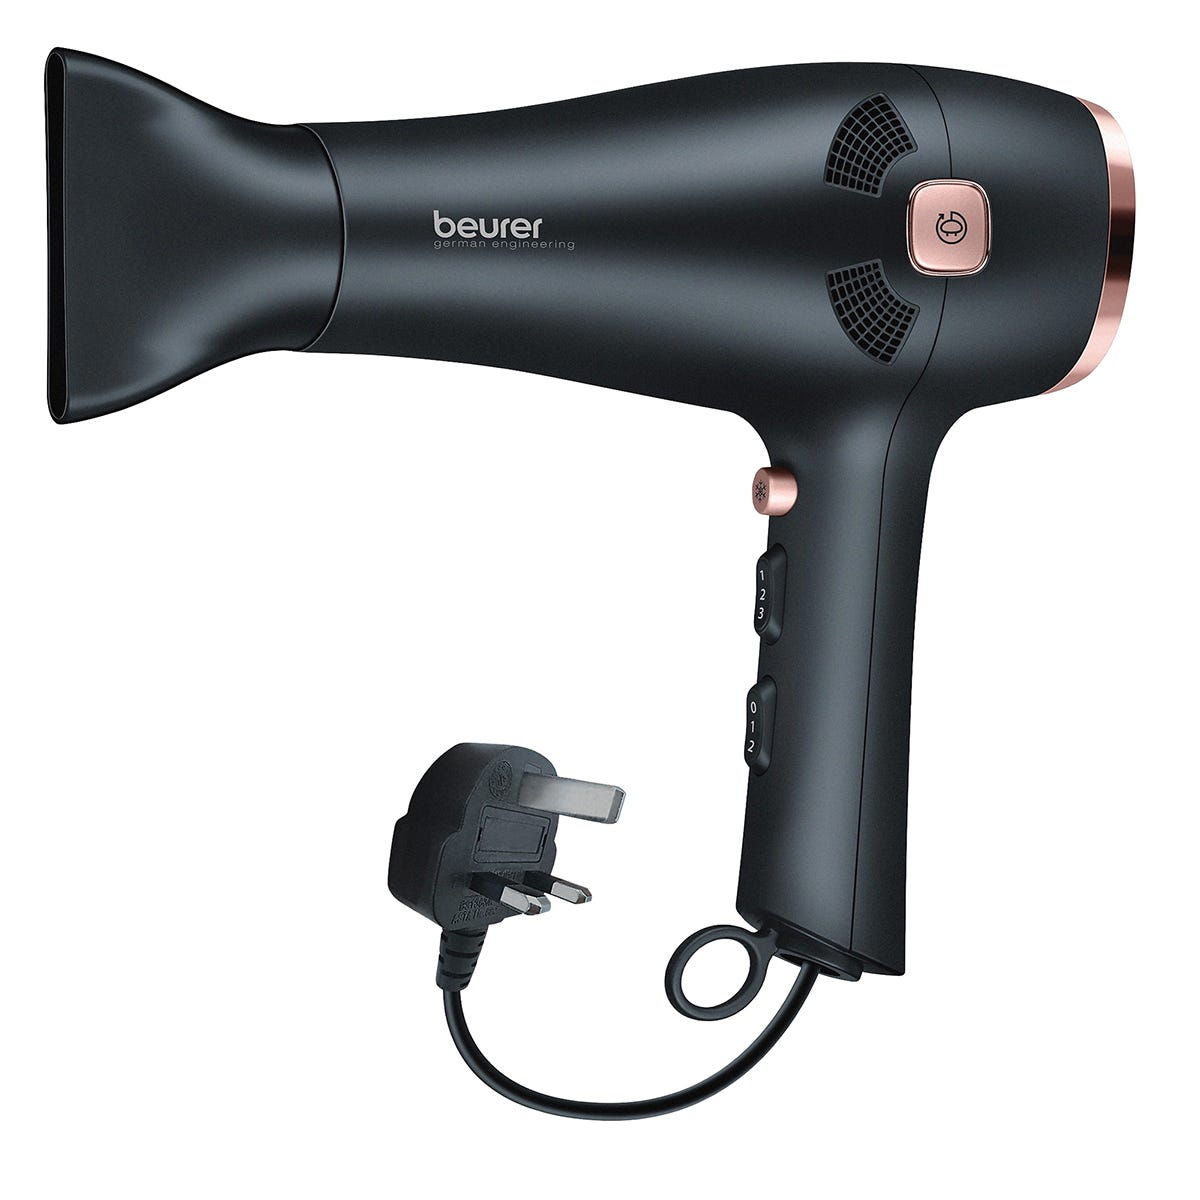 Beurer HC55 Style Pro 2000W Hair Dryer with Cable Rewind Function - Black/Rose Gold